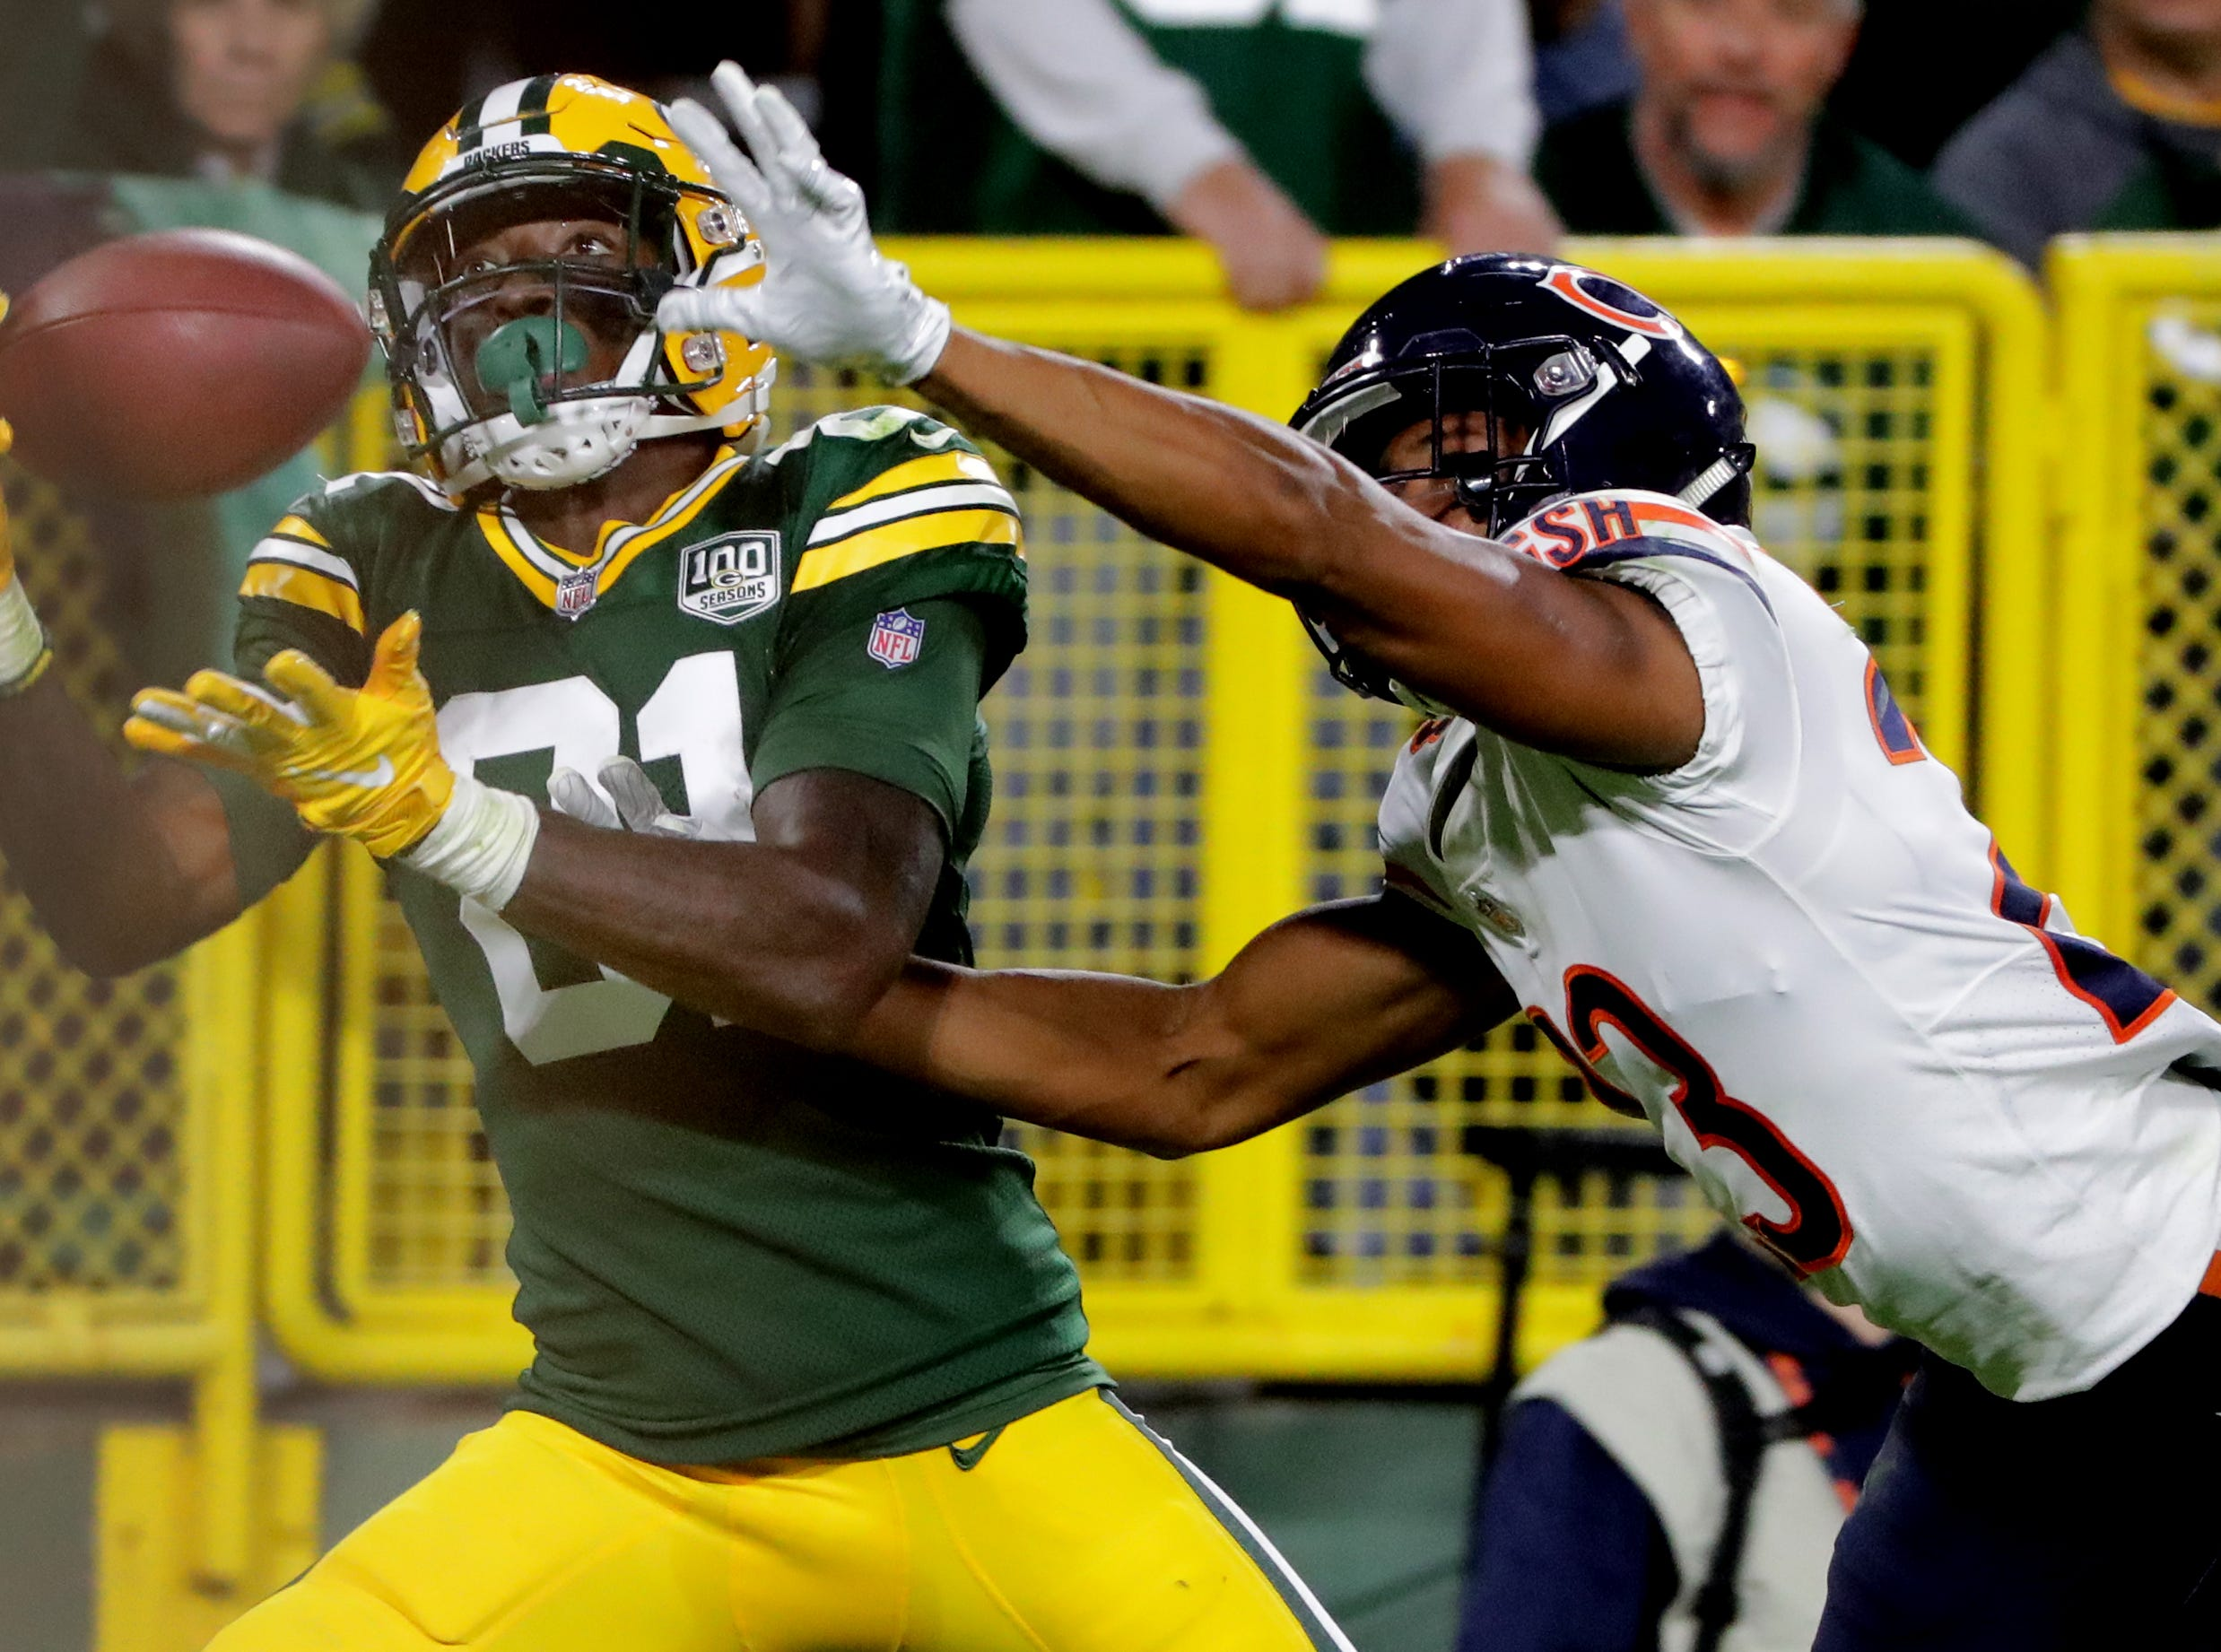 Green Bay Packers wide receiver Geronimo Allison (81) reels in a 39-yard touchdown pass while being covered by Chicago Bears defensive back Kyle Fuller (23) during the fourth quarter Sunday, September 9, 2018 at Lambeau Field in Green Bay, Wis.